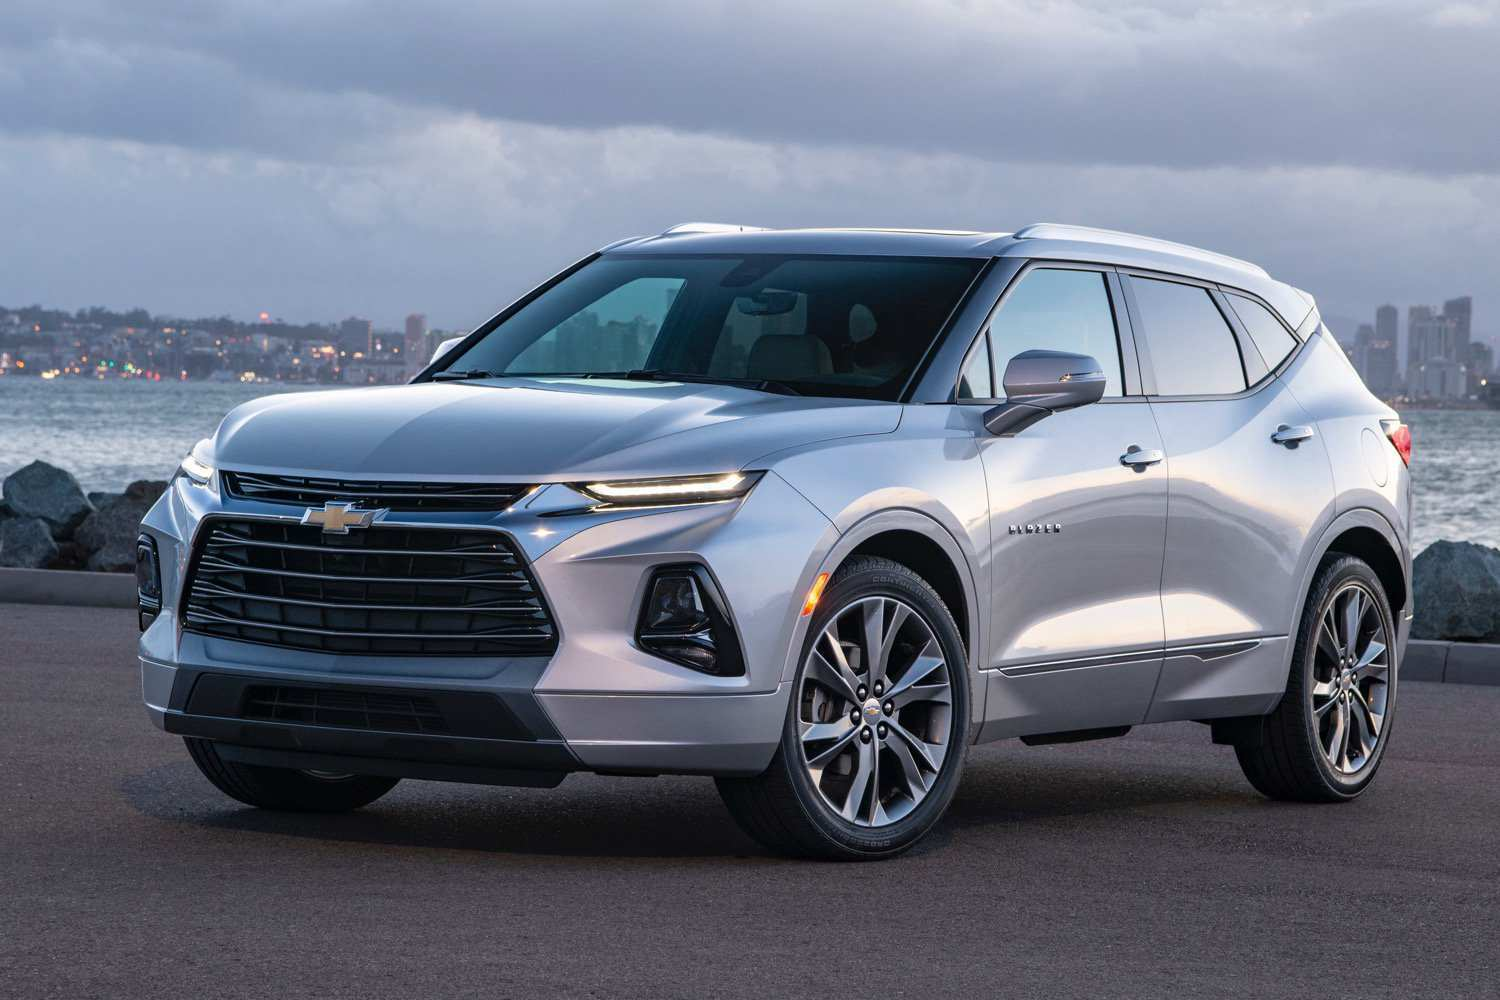 39 The Best 2020 All Chevy Equinox Concept And Review